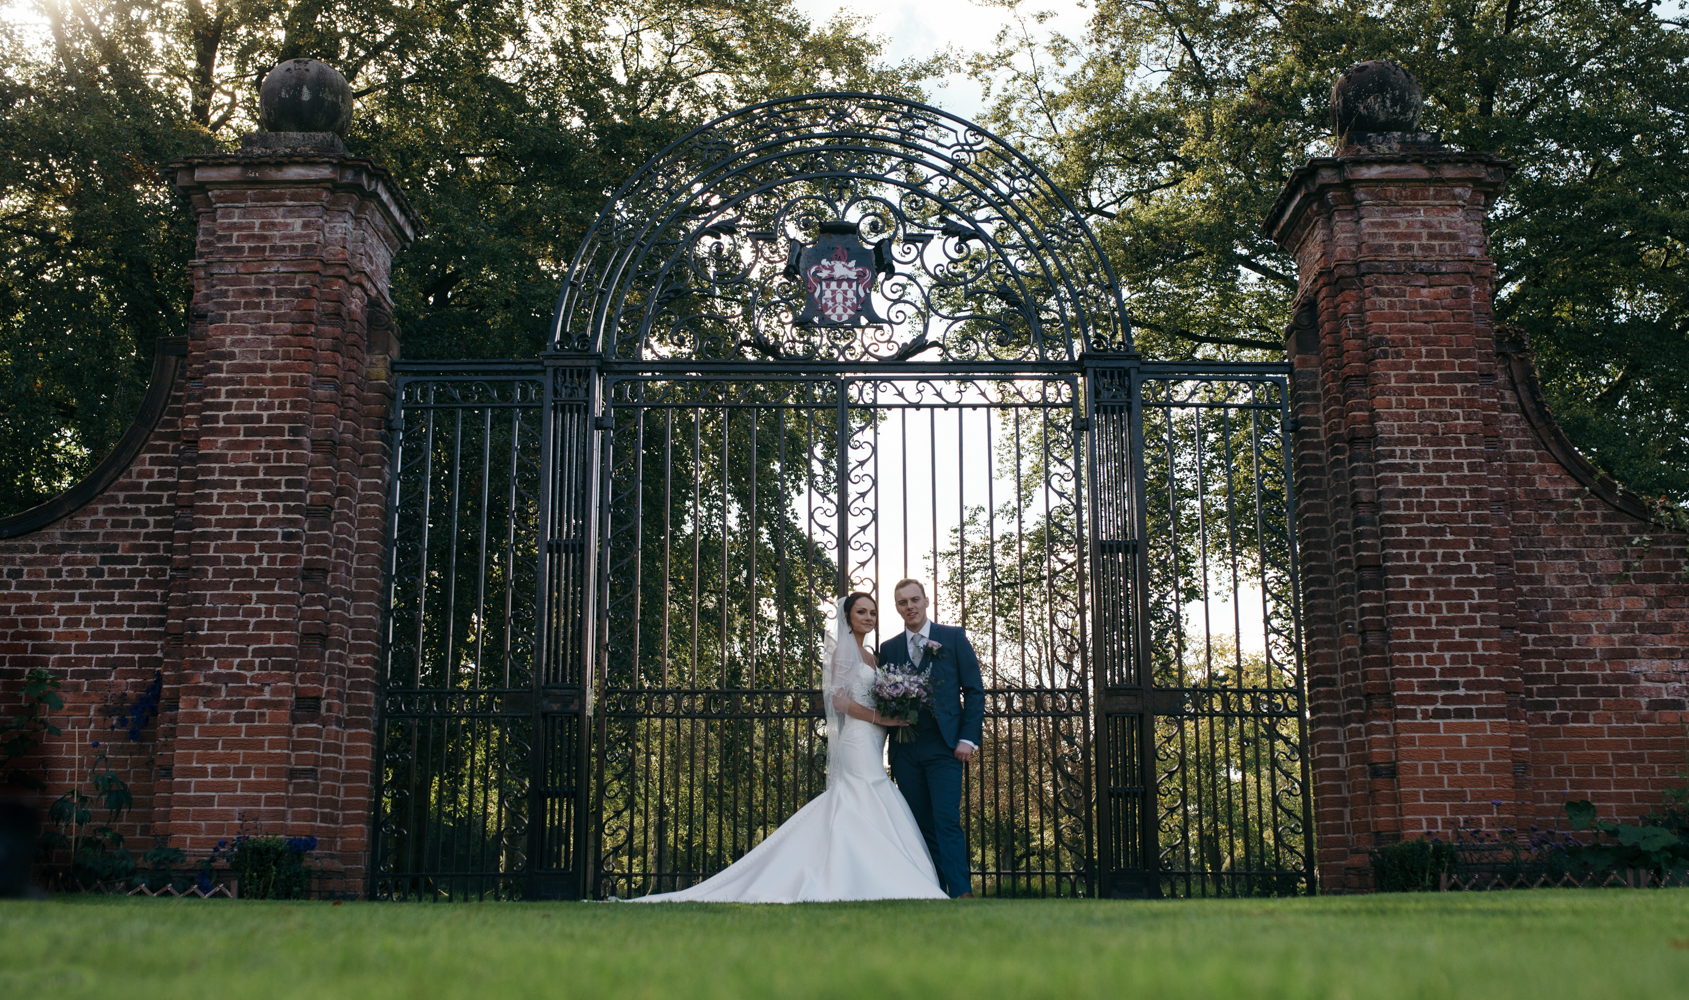 The bride and groom posing in front of the beautiful wrought iron gates at Inglewood Manor